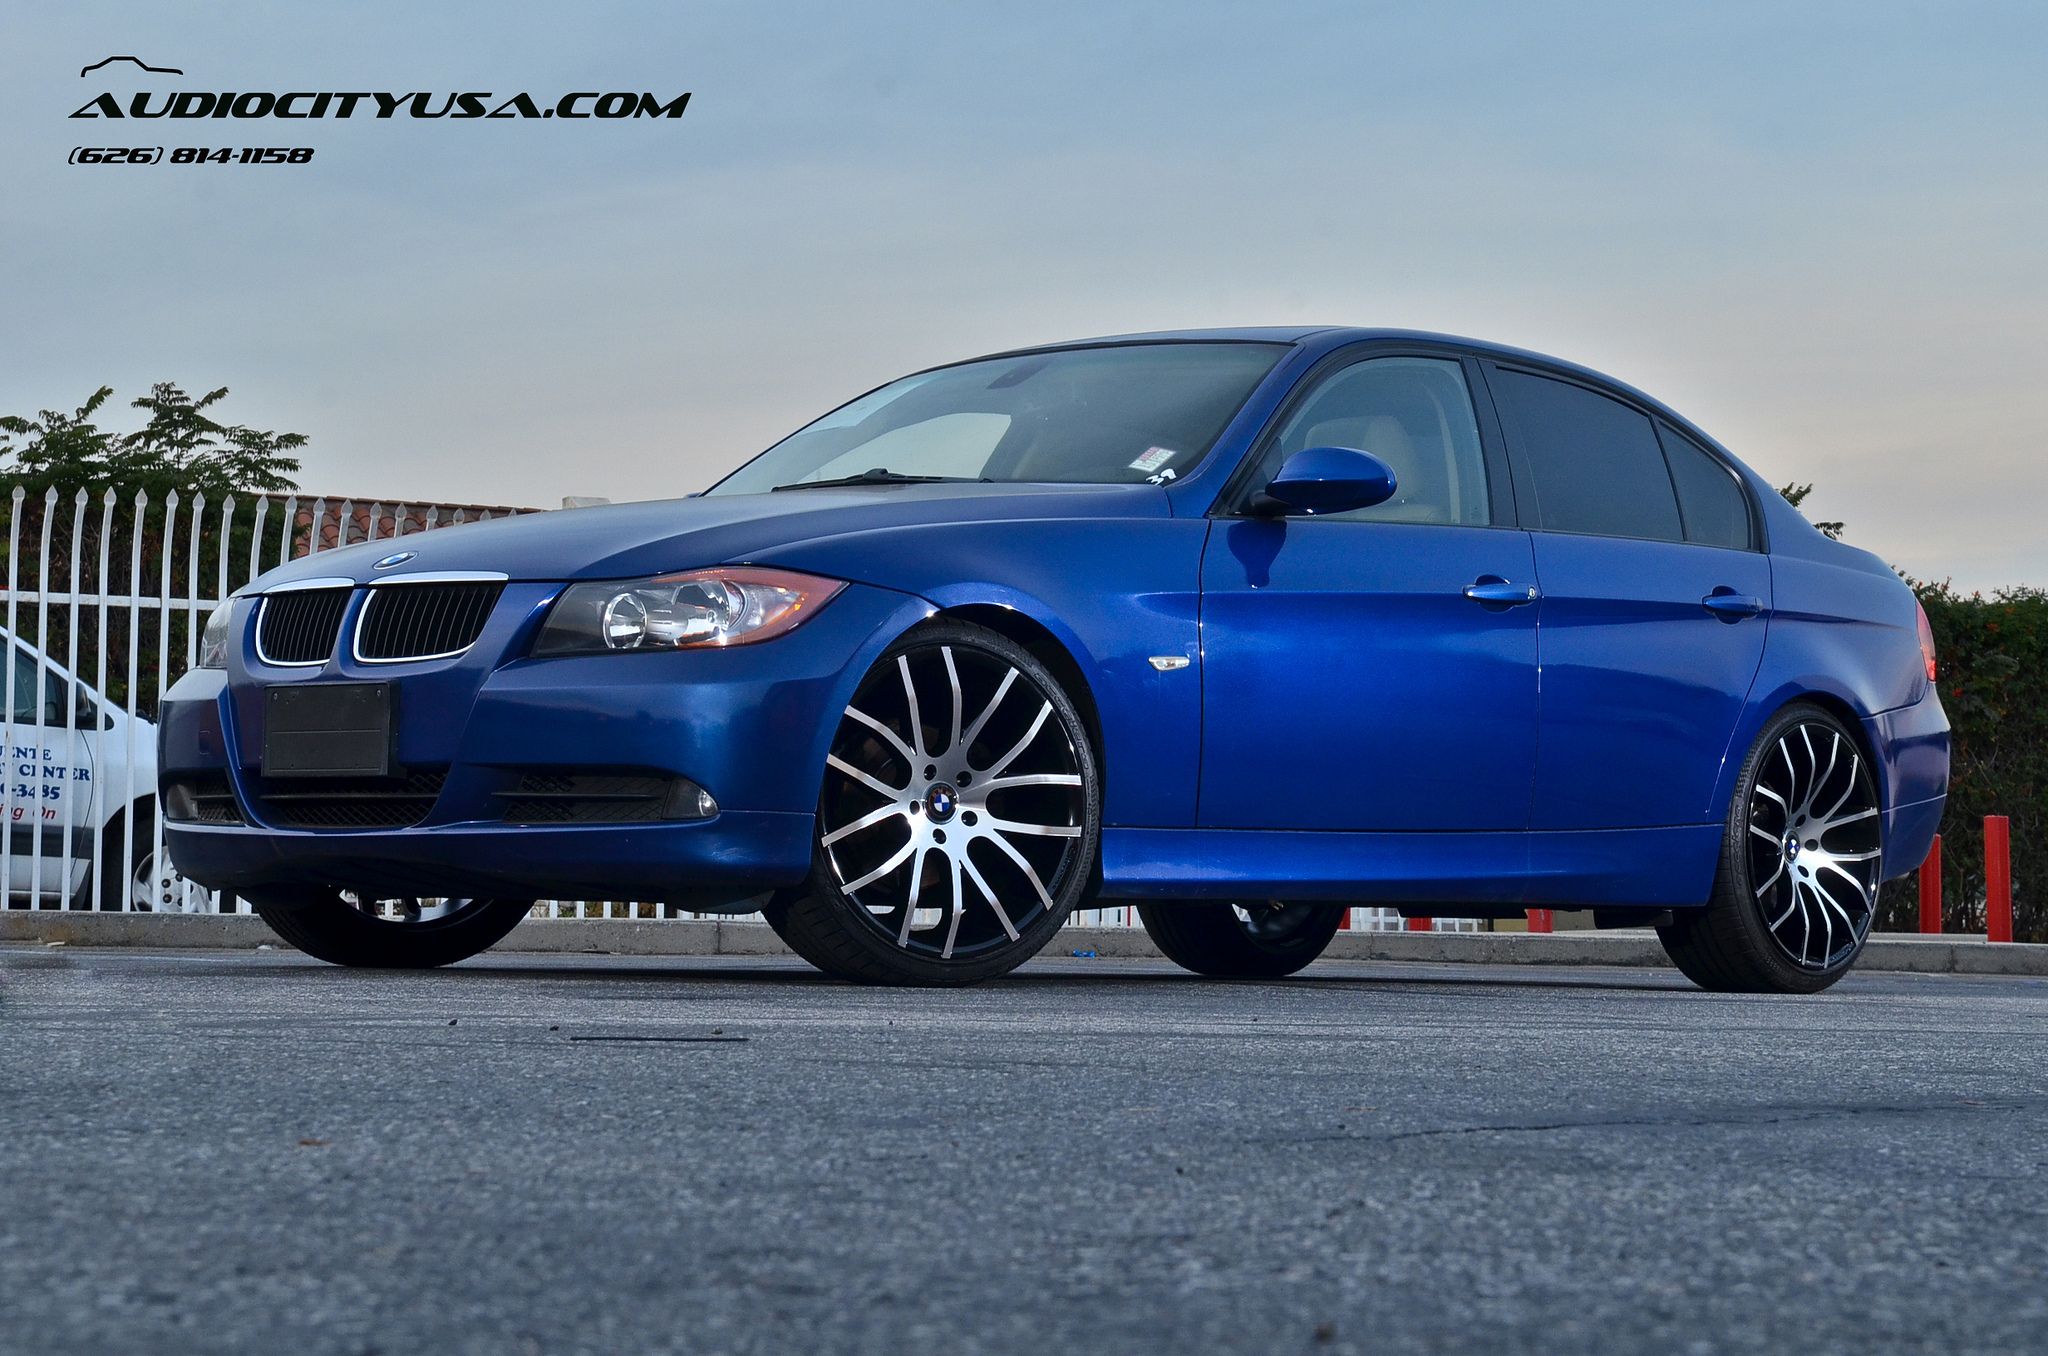 Giovanna Kilis Machine Black on BMW 328i